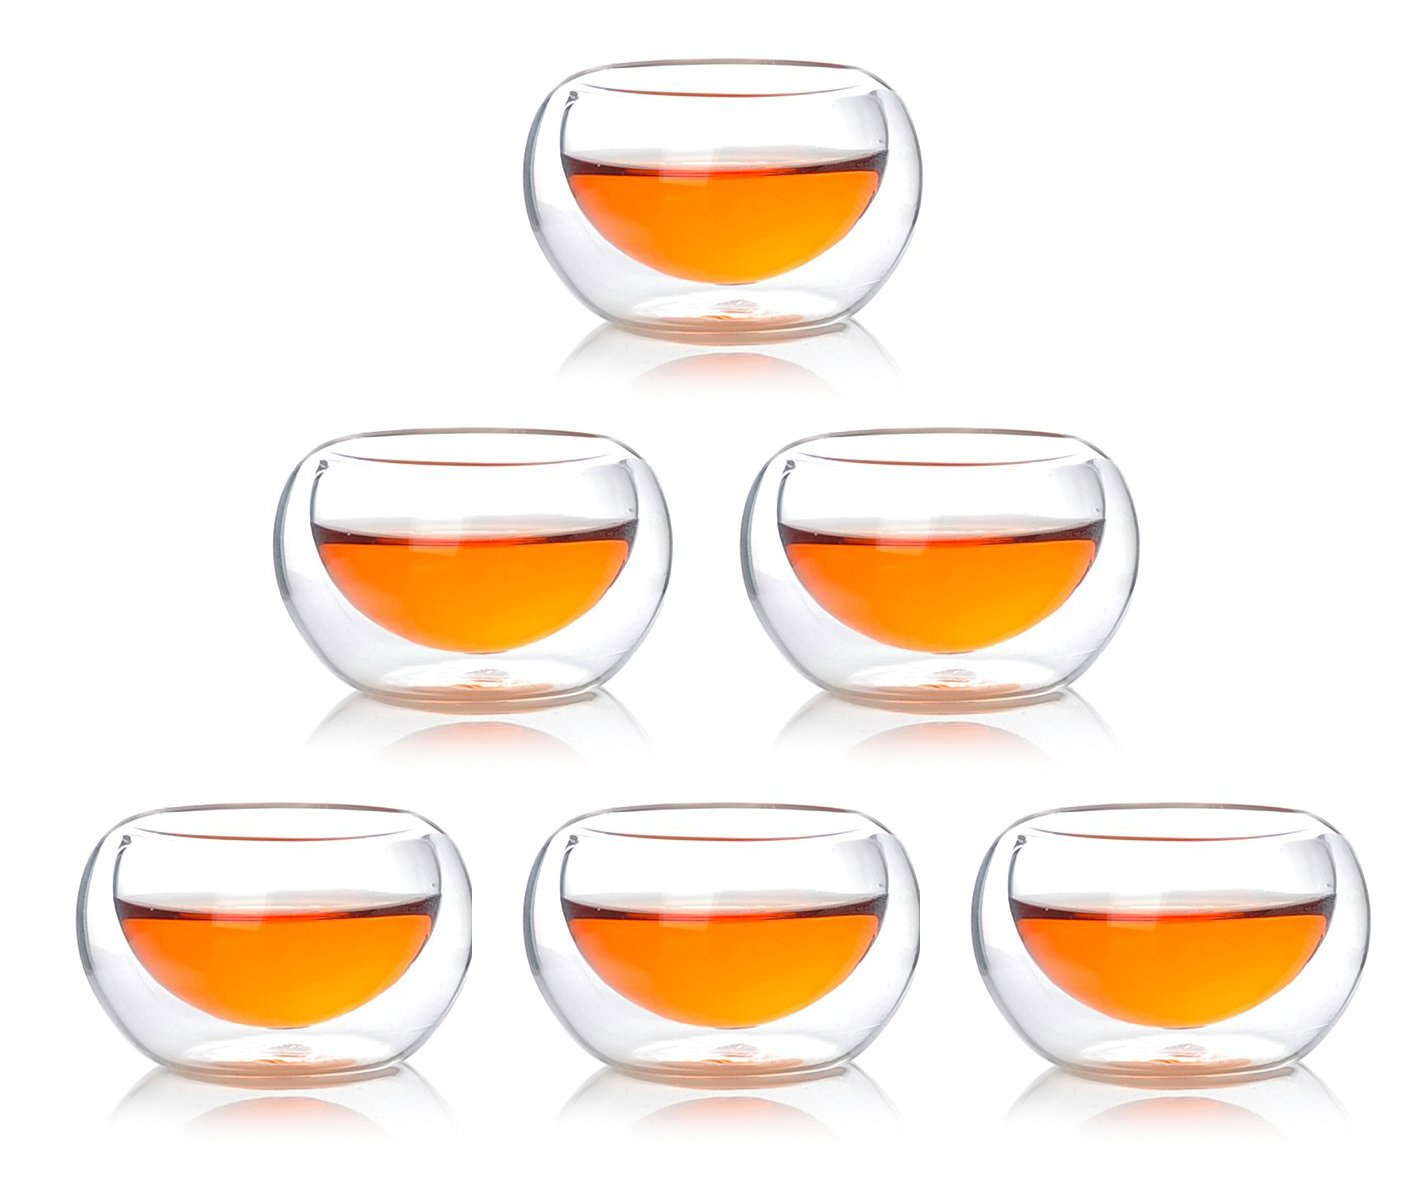 Atlantic Collectibles Heat Thermal Resistant Double Wall Insulated Glass Sake or Tea Cup Set of 6 Cups Drinks Kitchen Decor Party Accessory